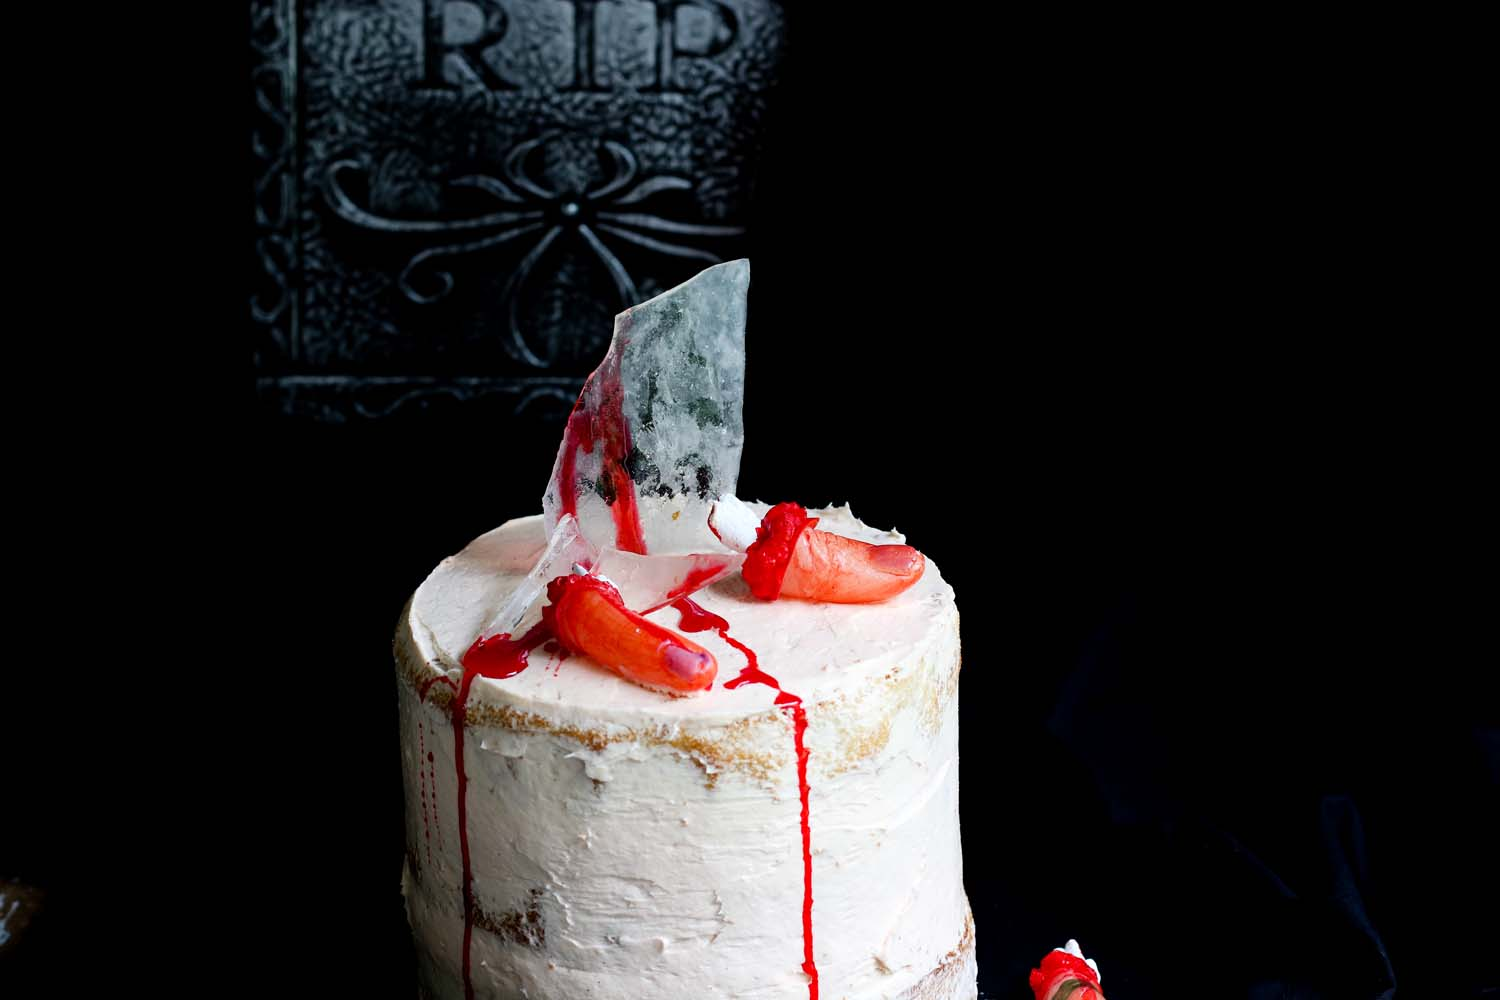 Severed Finger cake